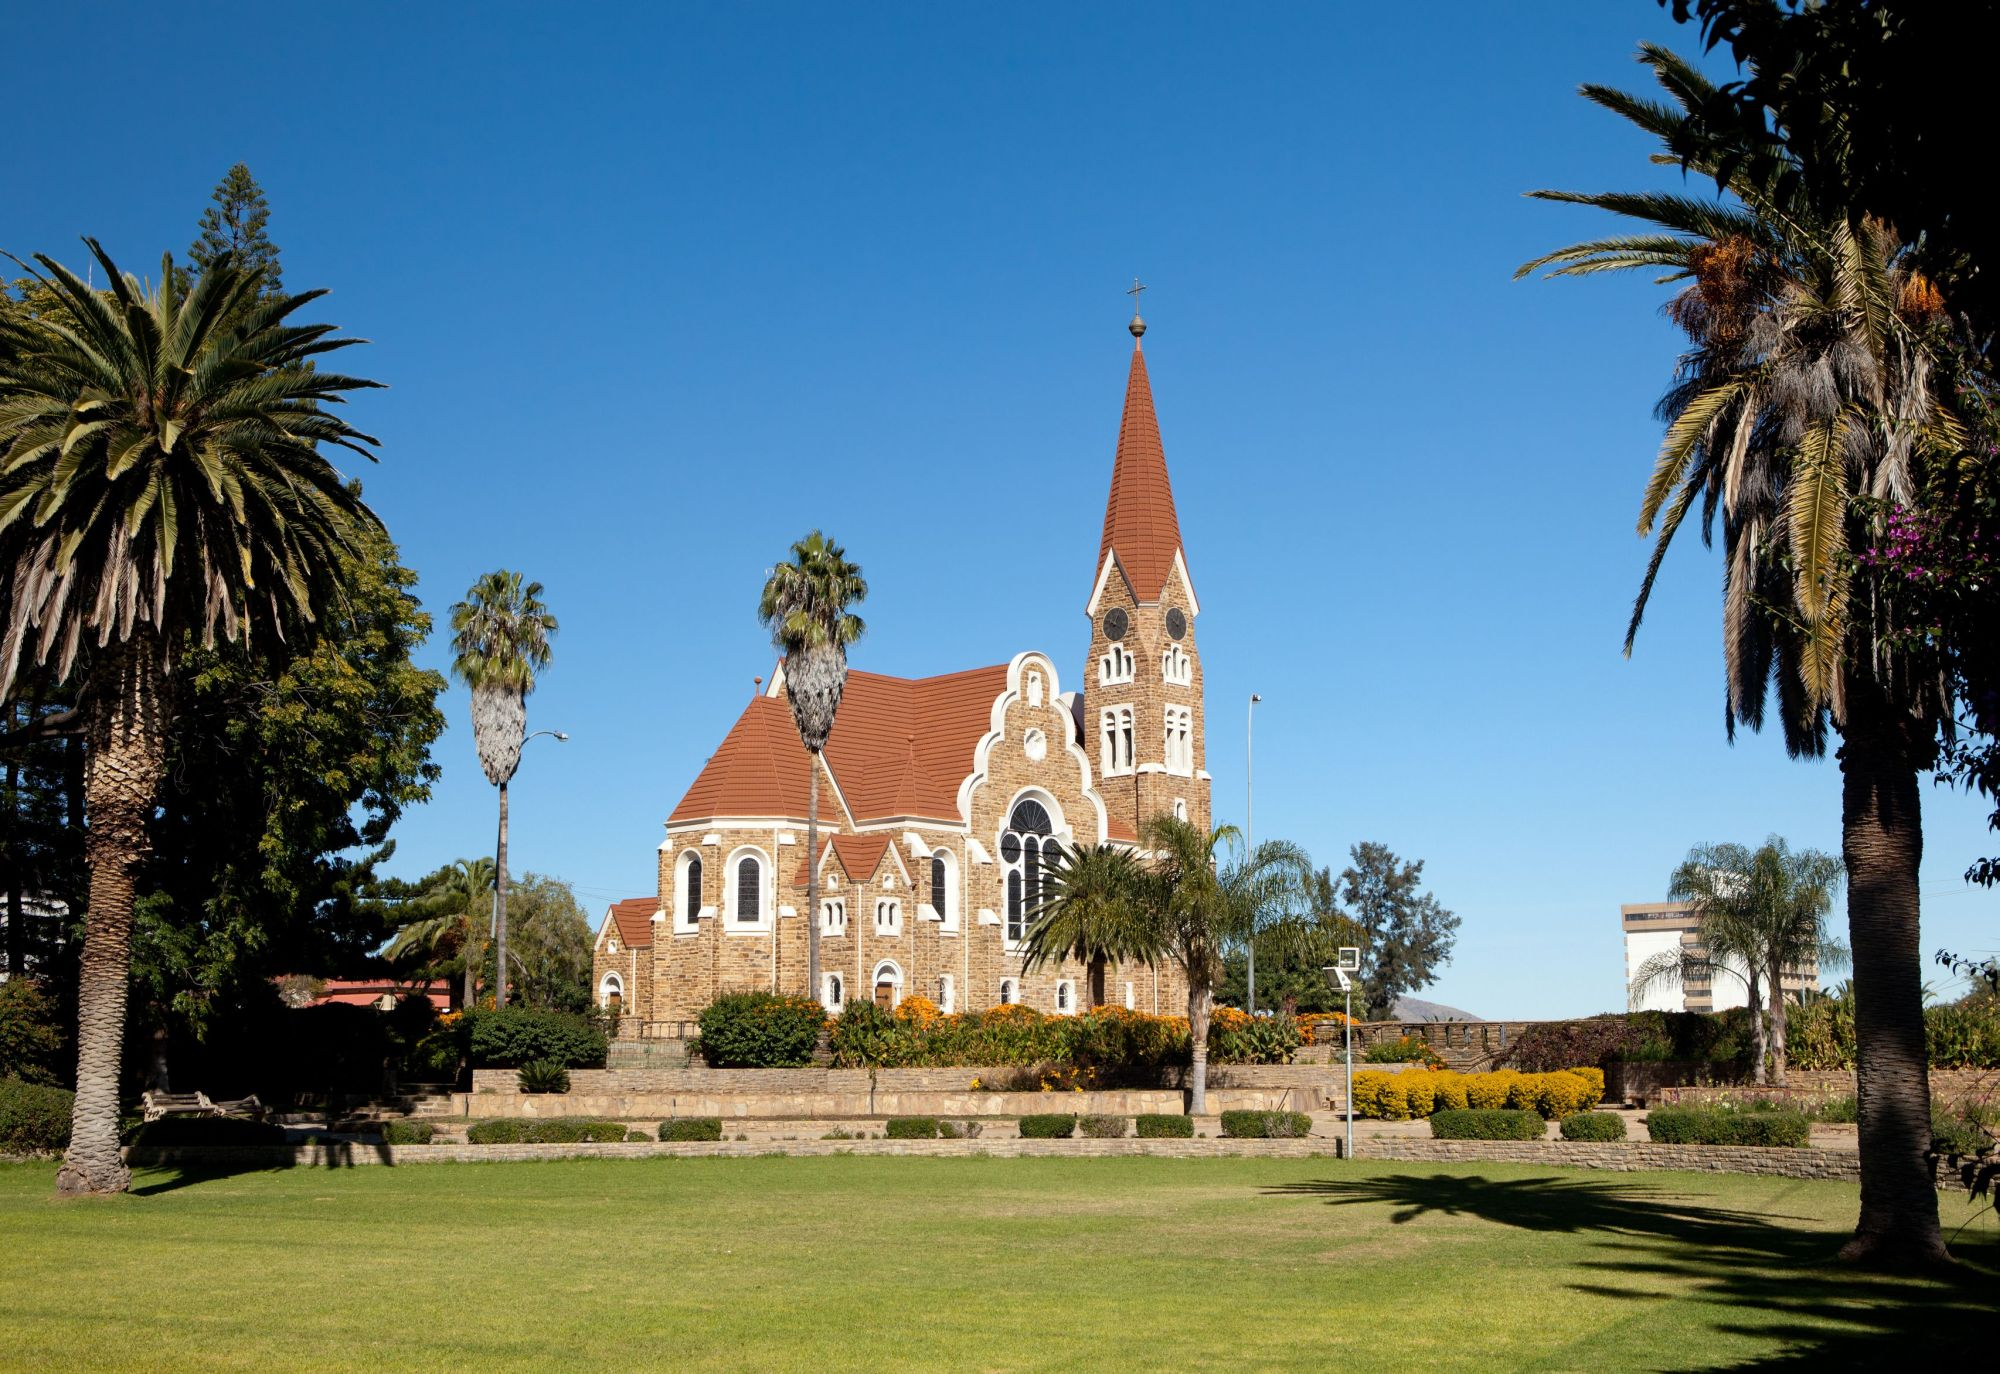 http://www.dreamstime.com/royalty-free-stock-image-christ-church-windhoek-image19946746